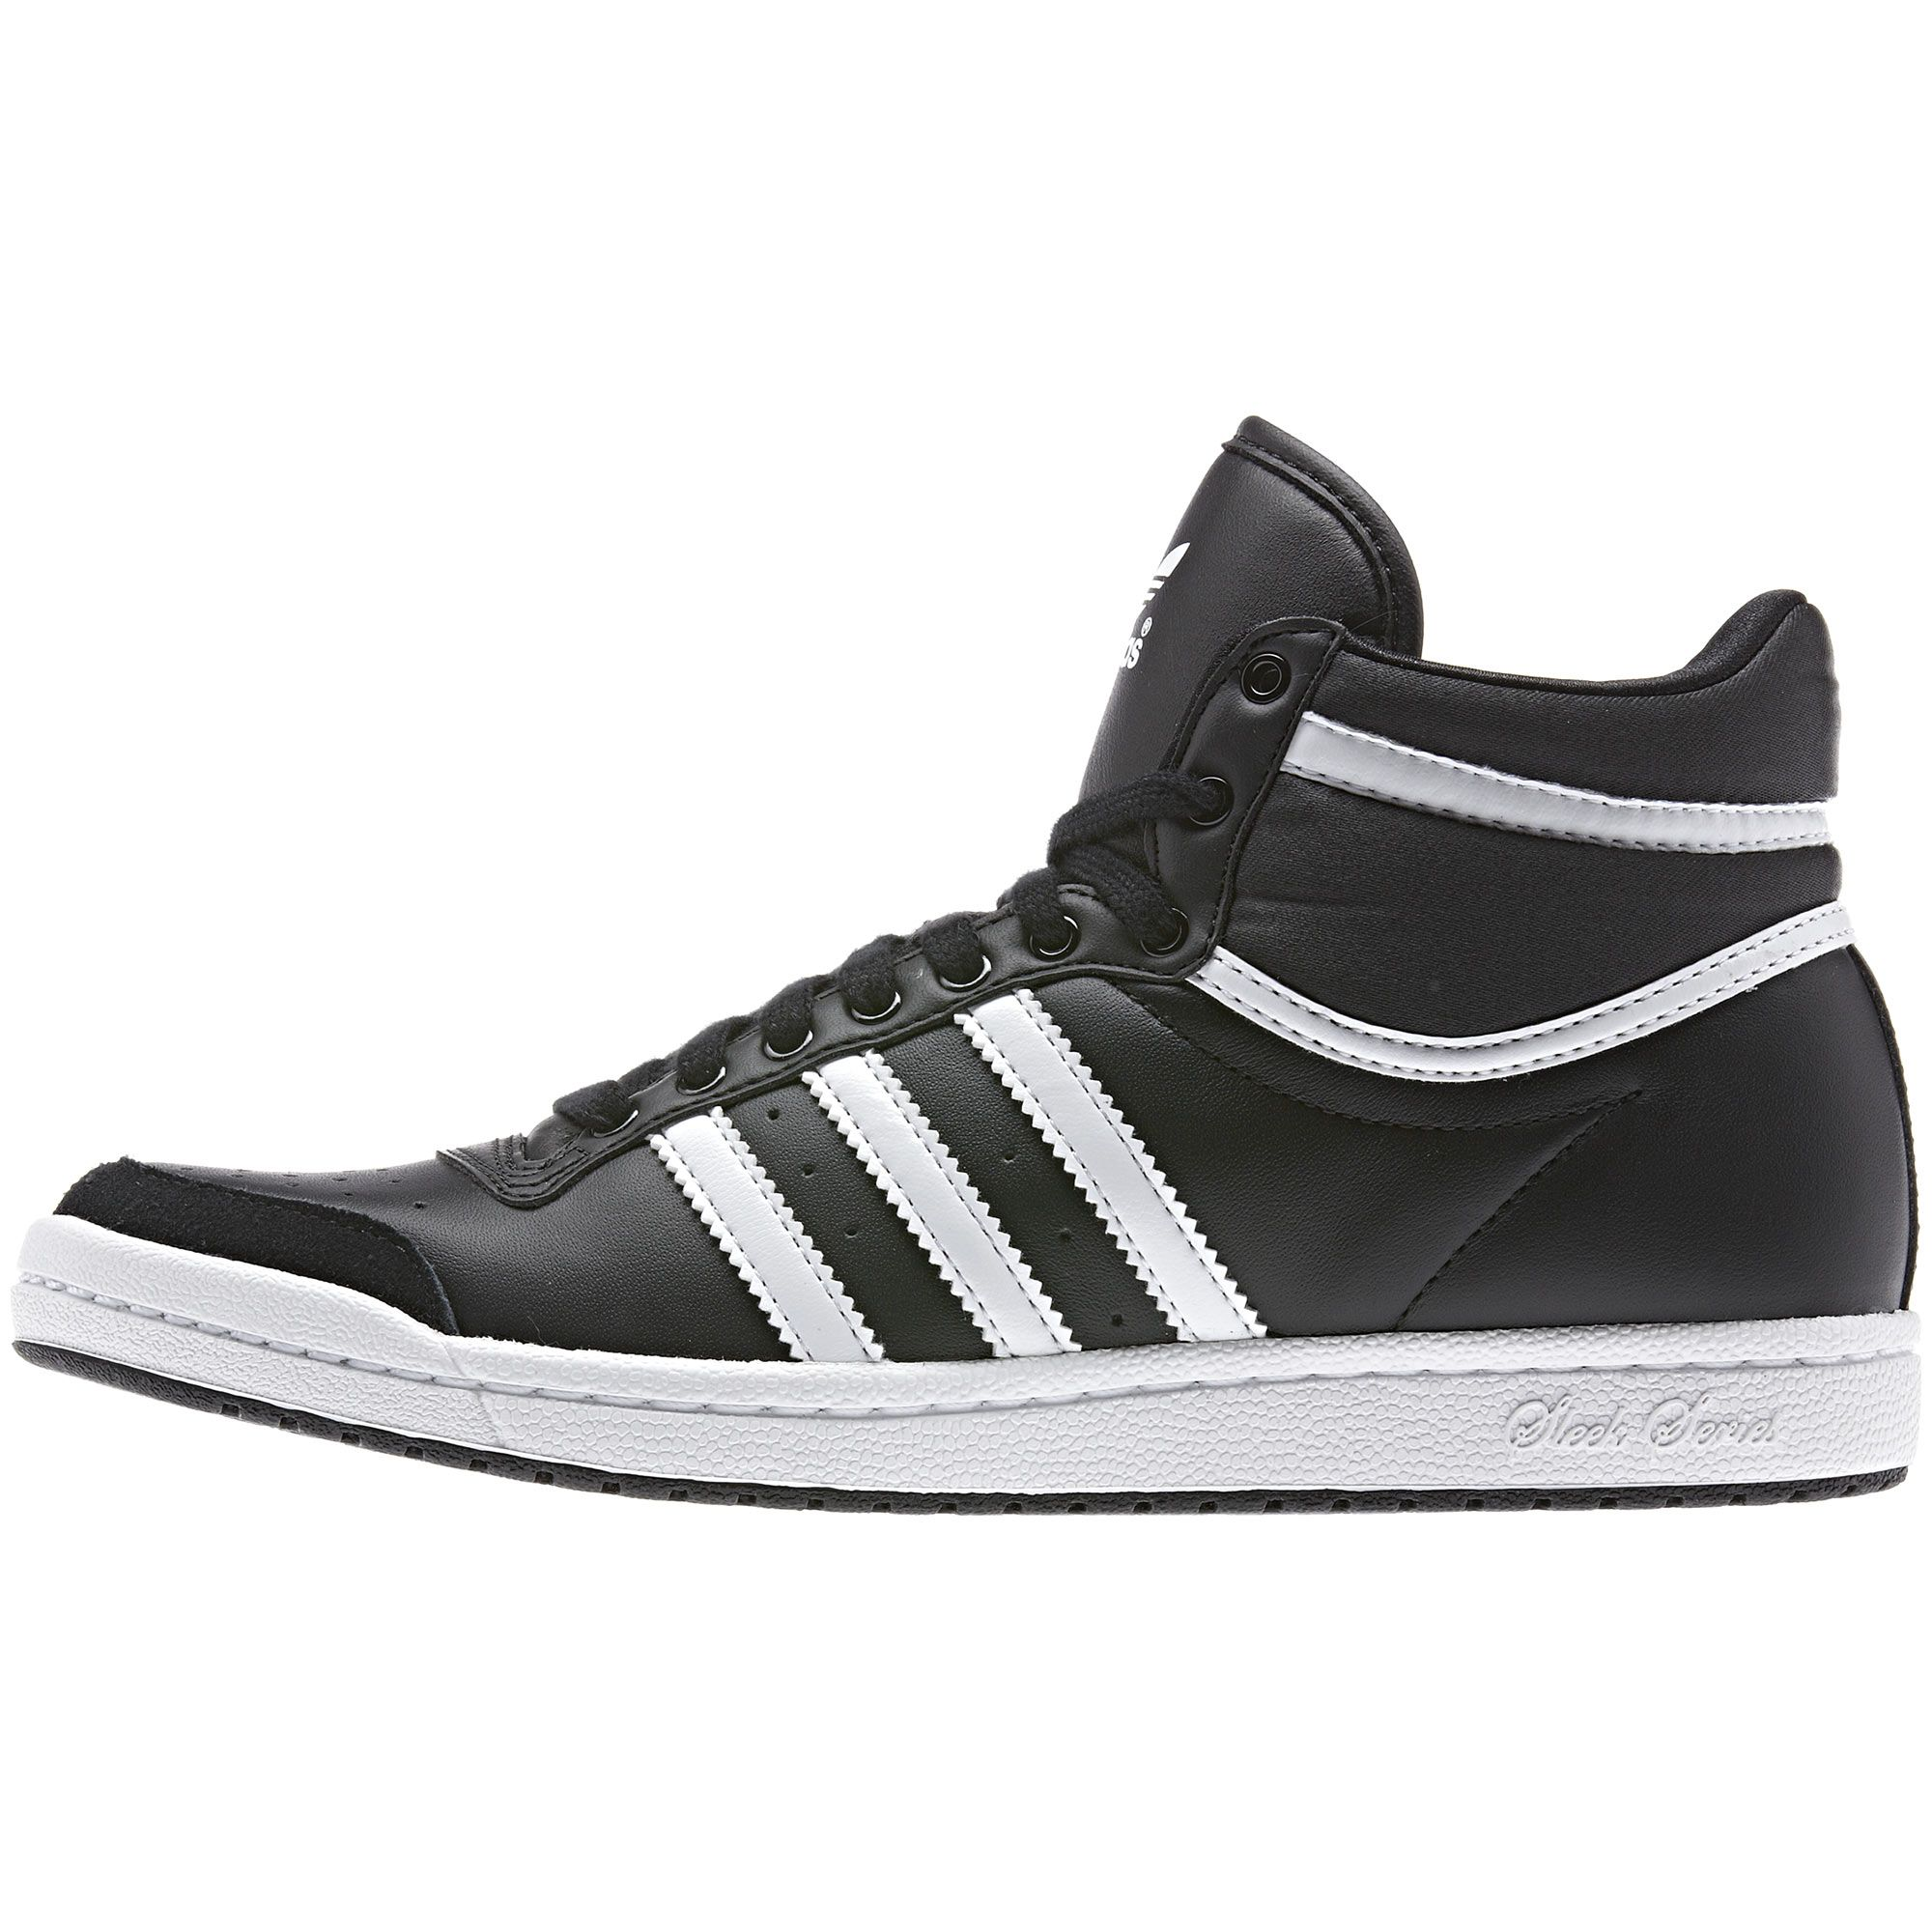 adidas Dames Top Ten Hi Sleek Schoenen | adidas Nederland ...